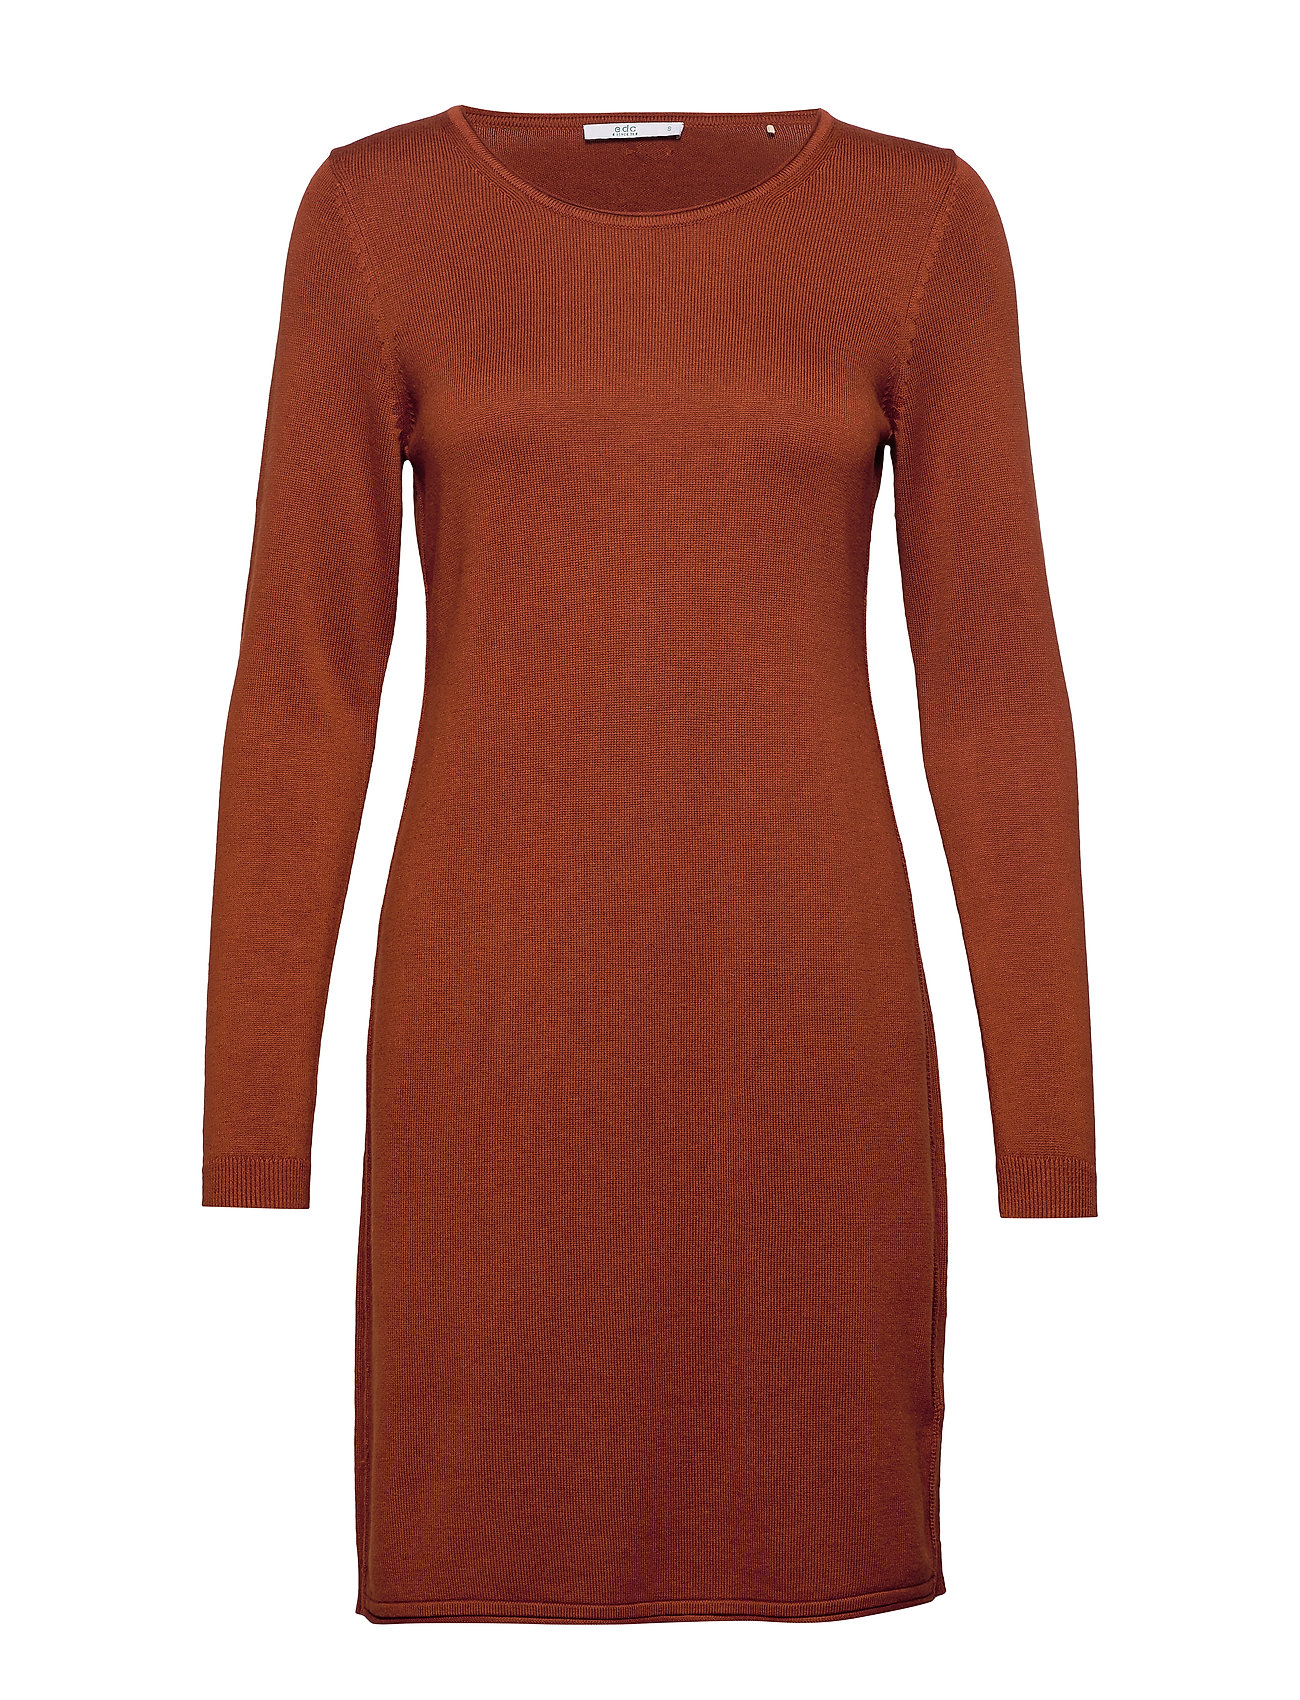 EDC by Esprit Dresses flat knitted - RUST BROWN 5